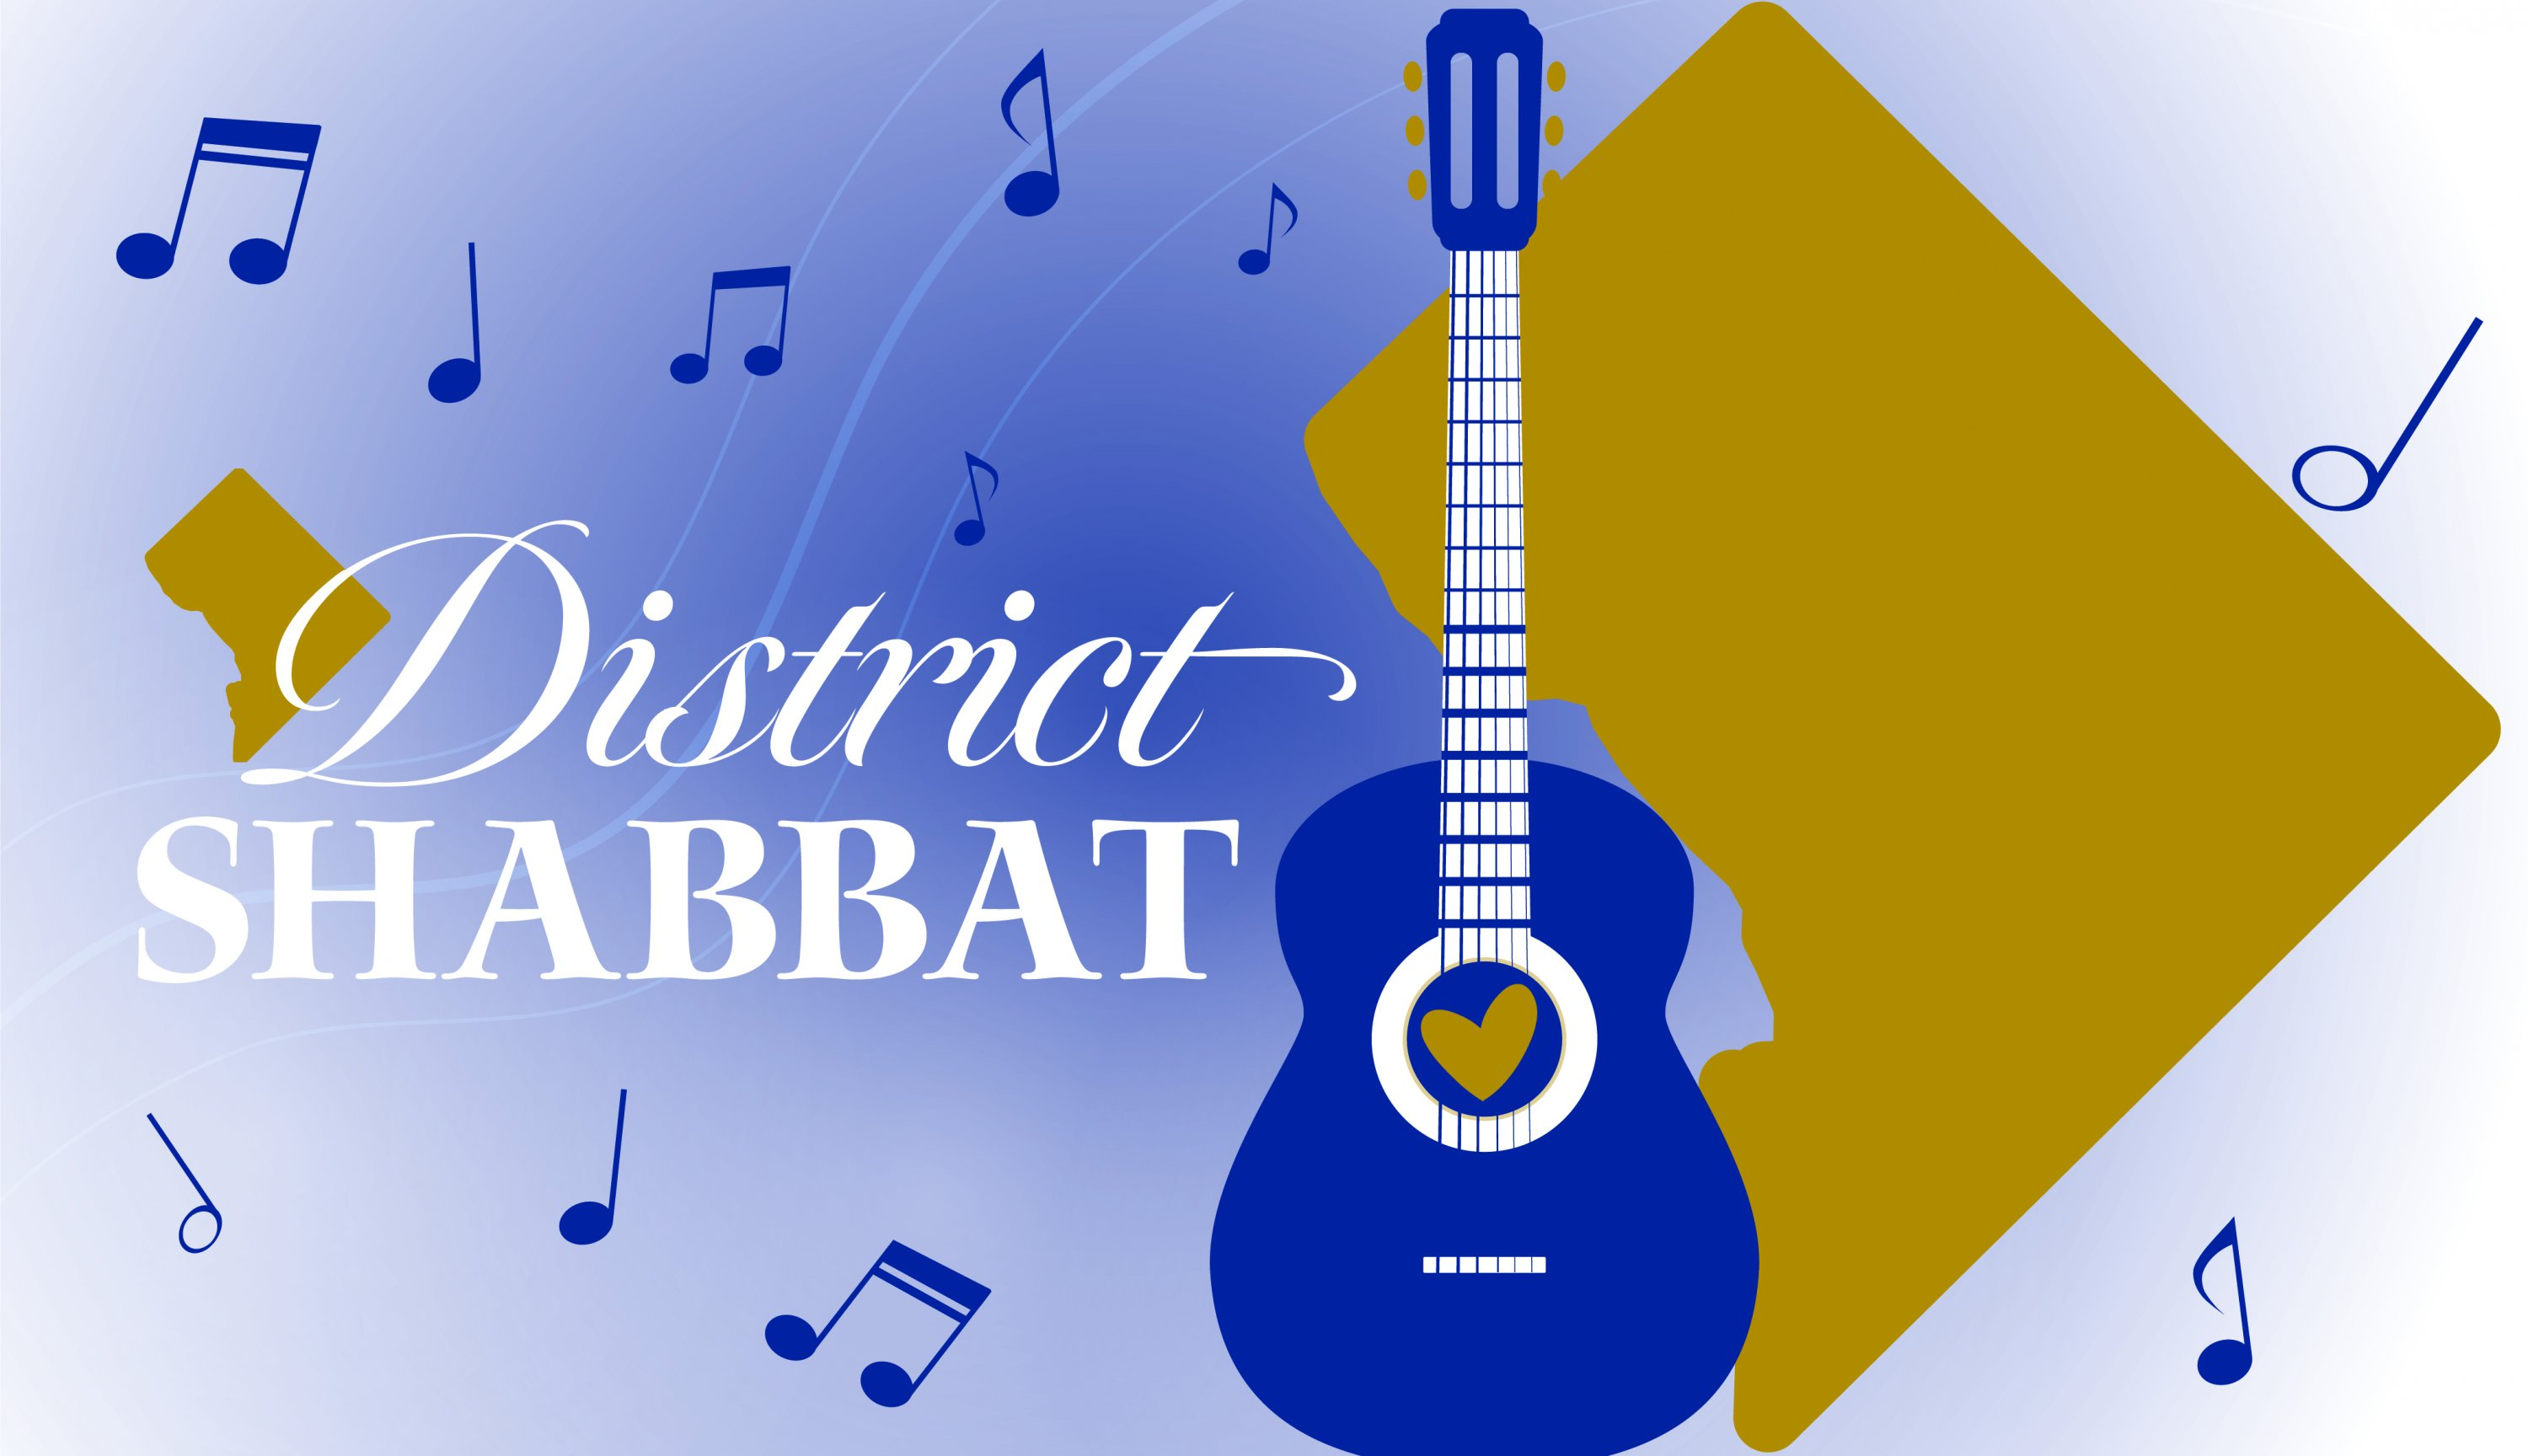 District Shabbat: Judaism Returns to Southwest DC